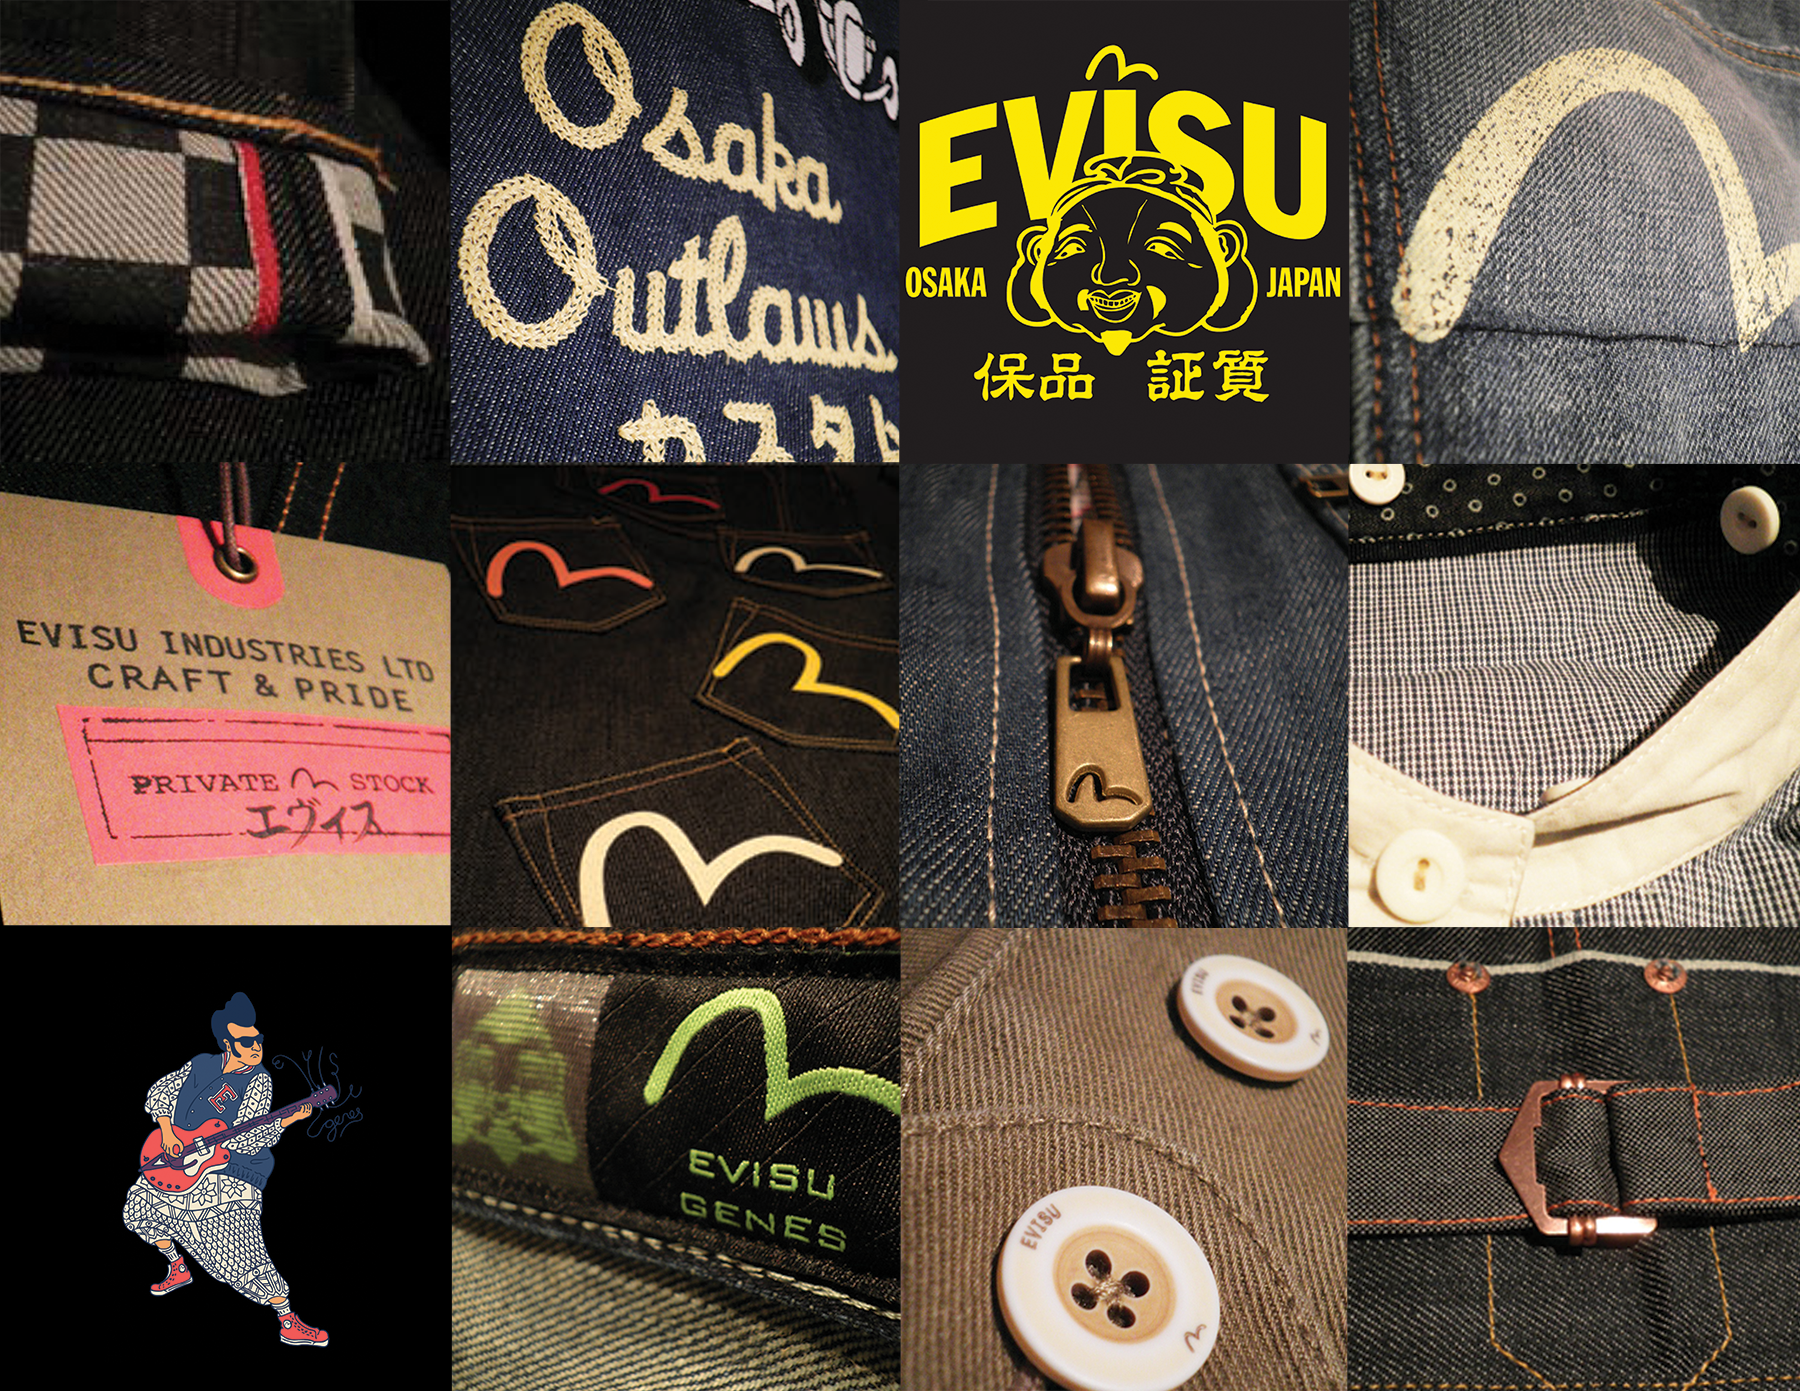 EVISU-Grid-page-ss13.png